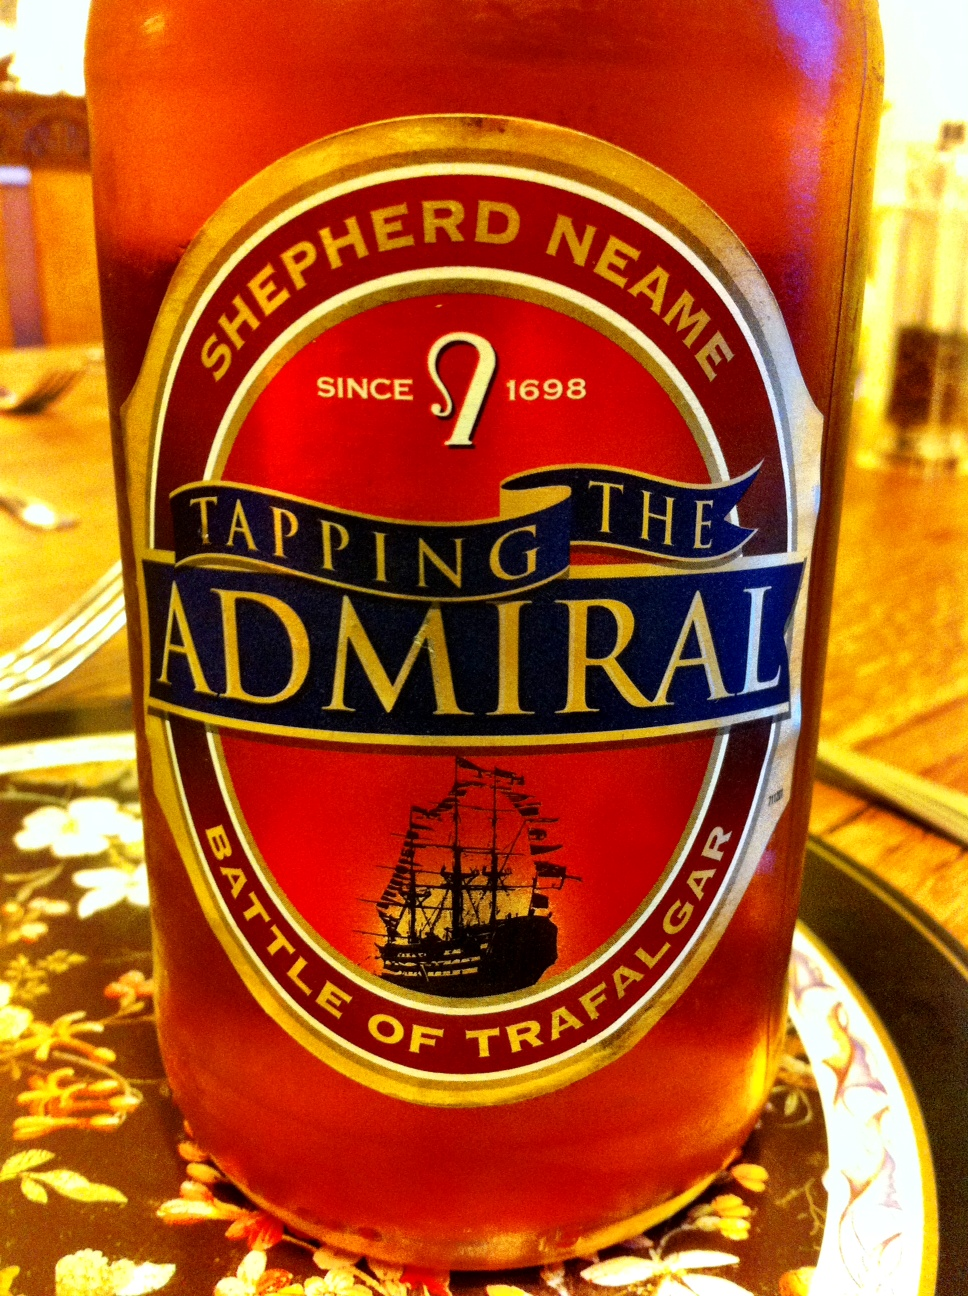 Shepherd Neame's 'Tapping the Admiral'